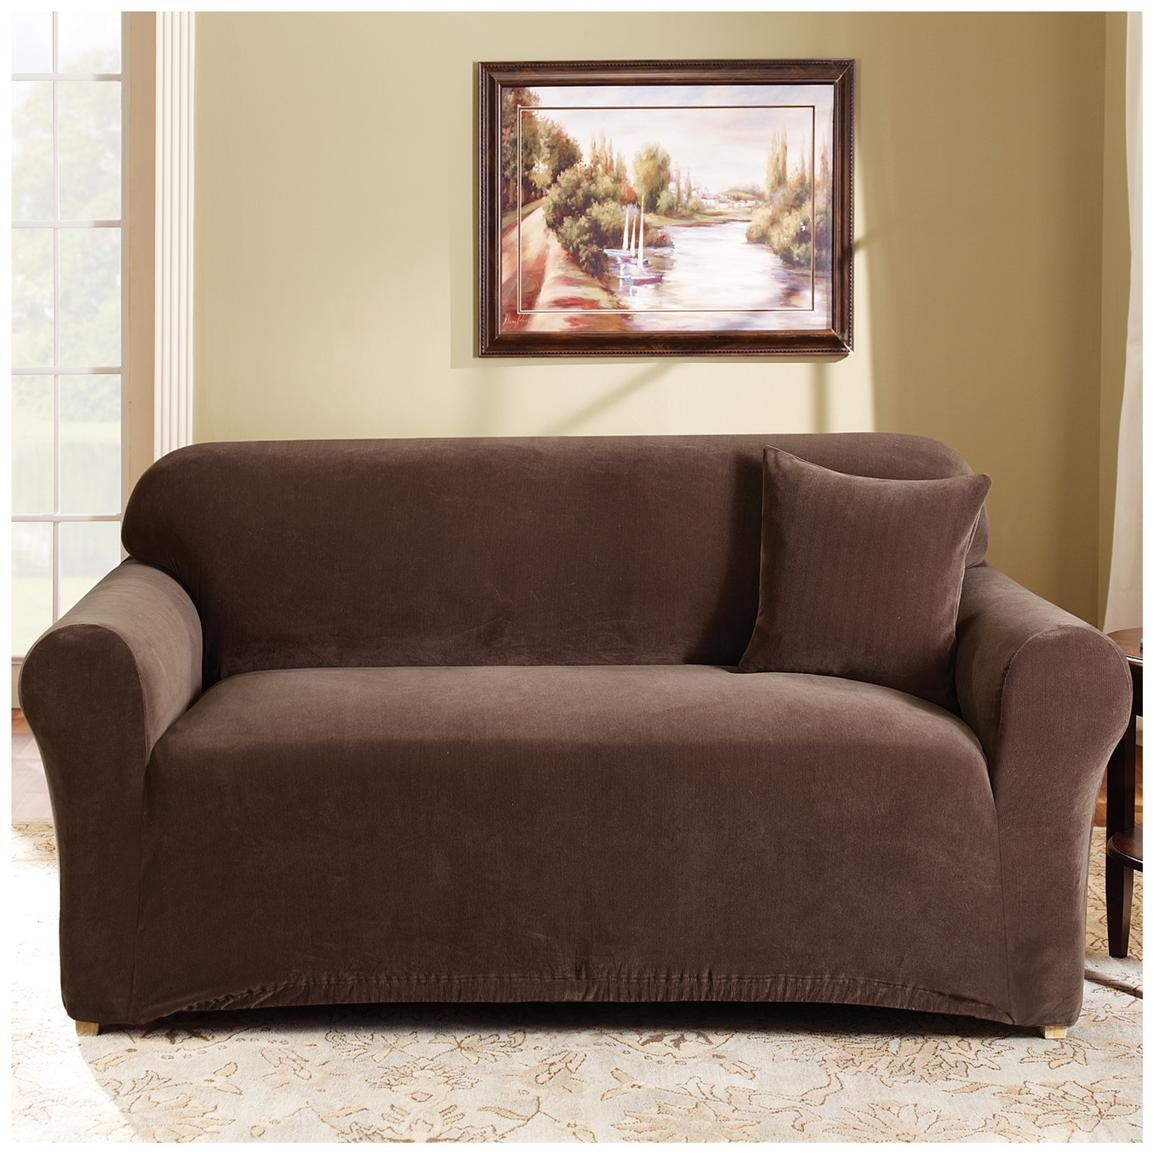 Sure Fit® Stretch Pearson Sofa Slipcover – 292823, Furniture Pertaining To Stretch Slipcover Sofas (Image 19 of 20)